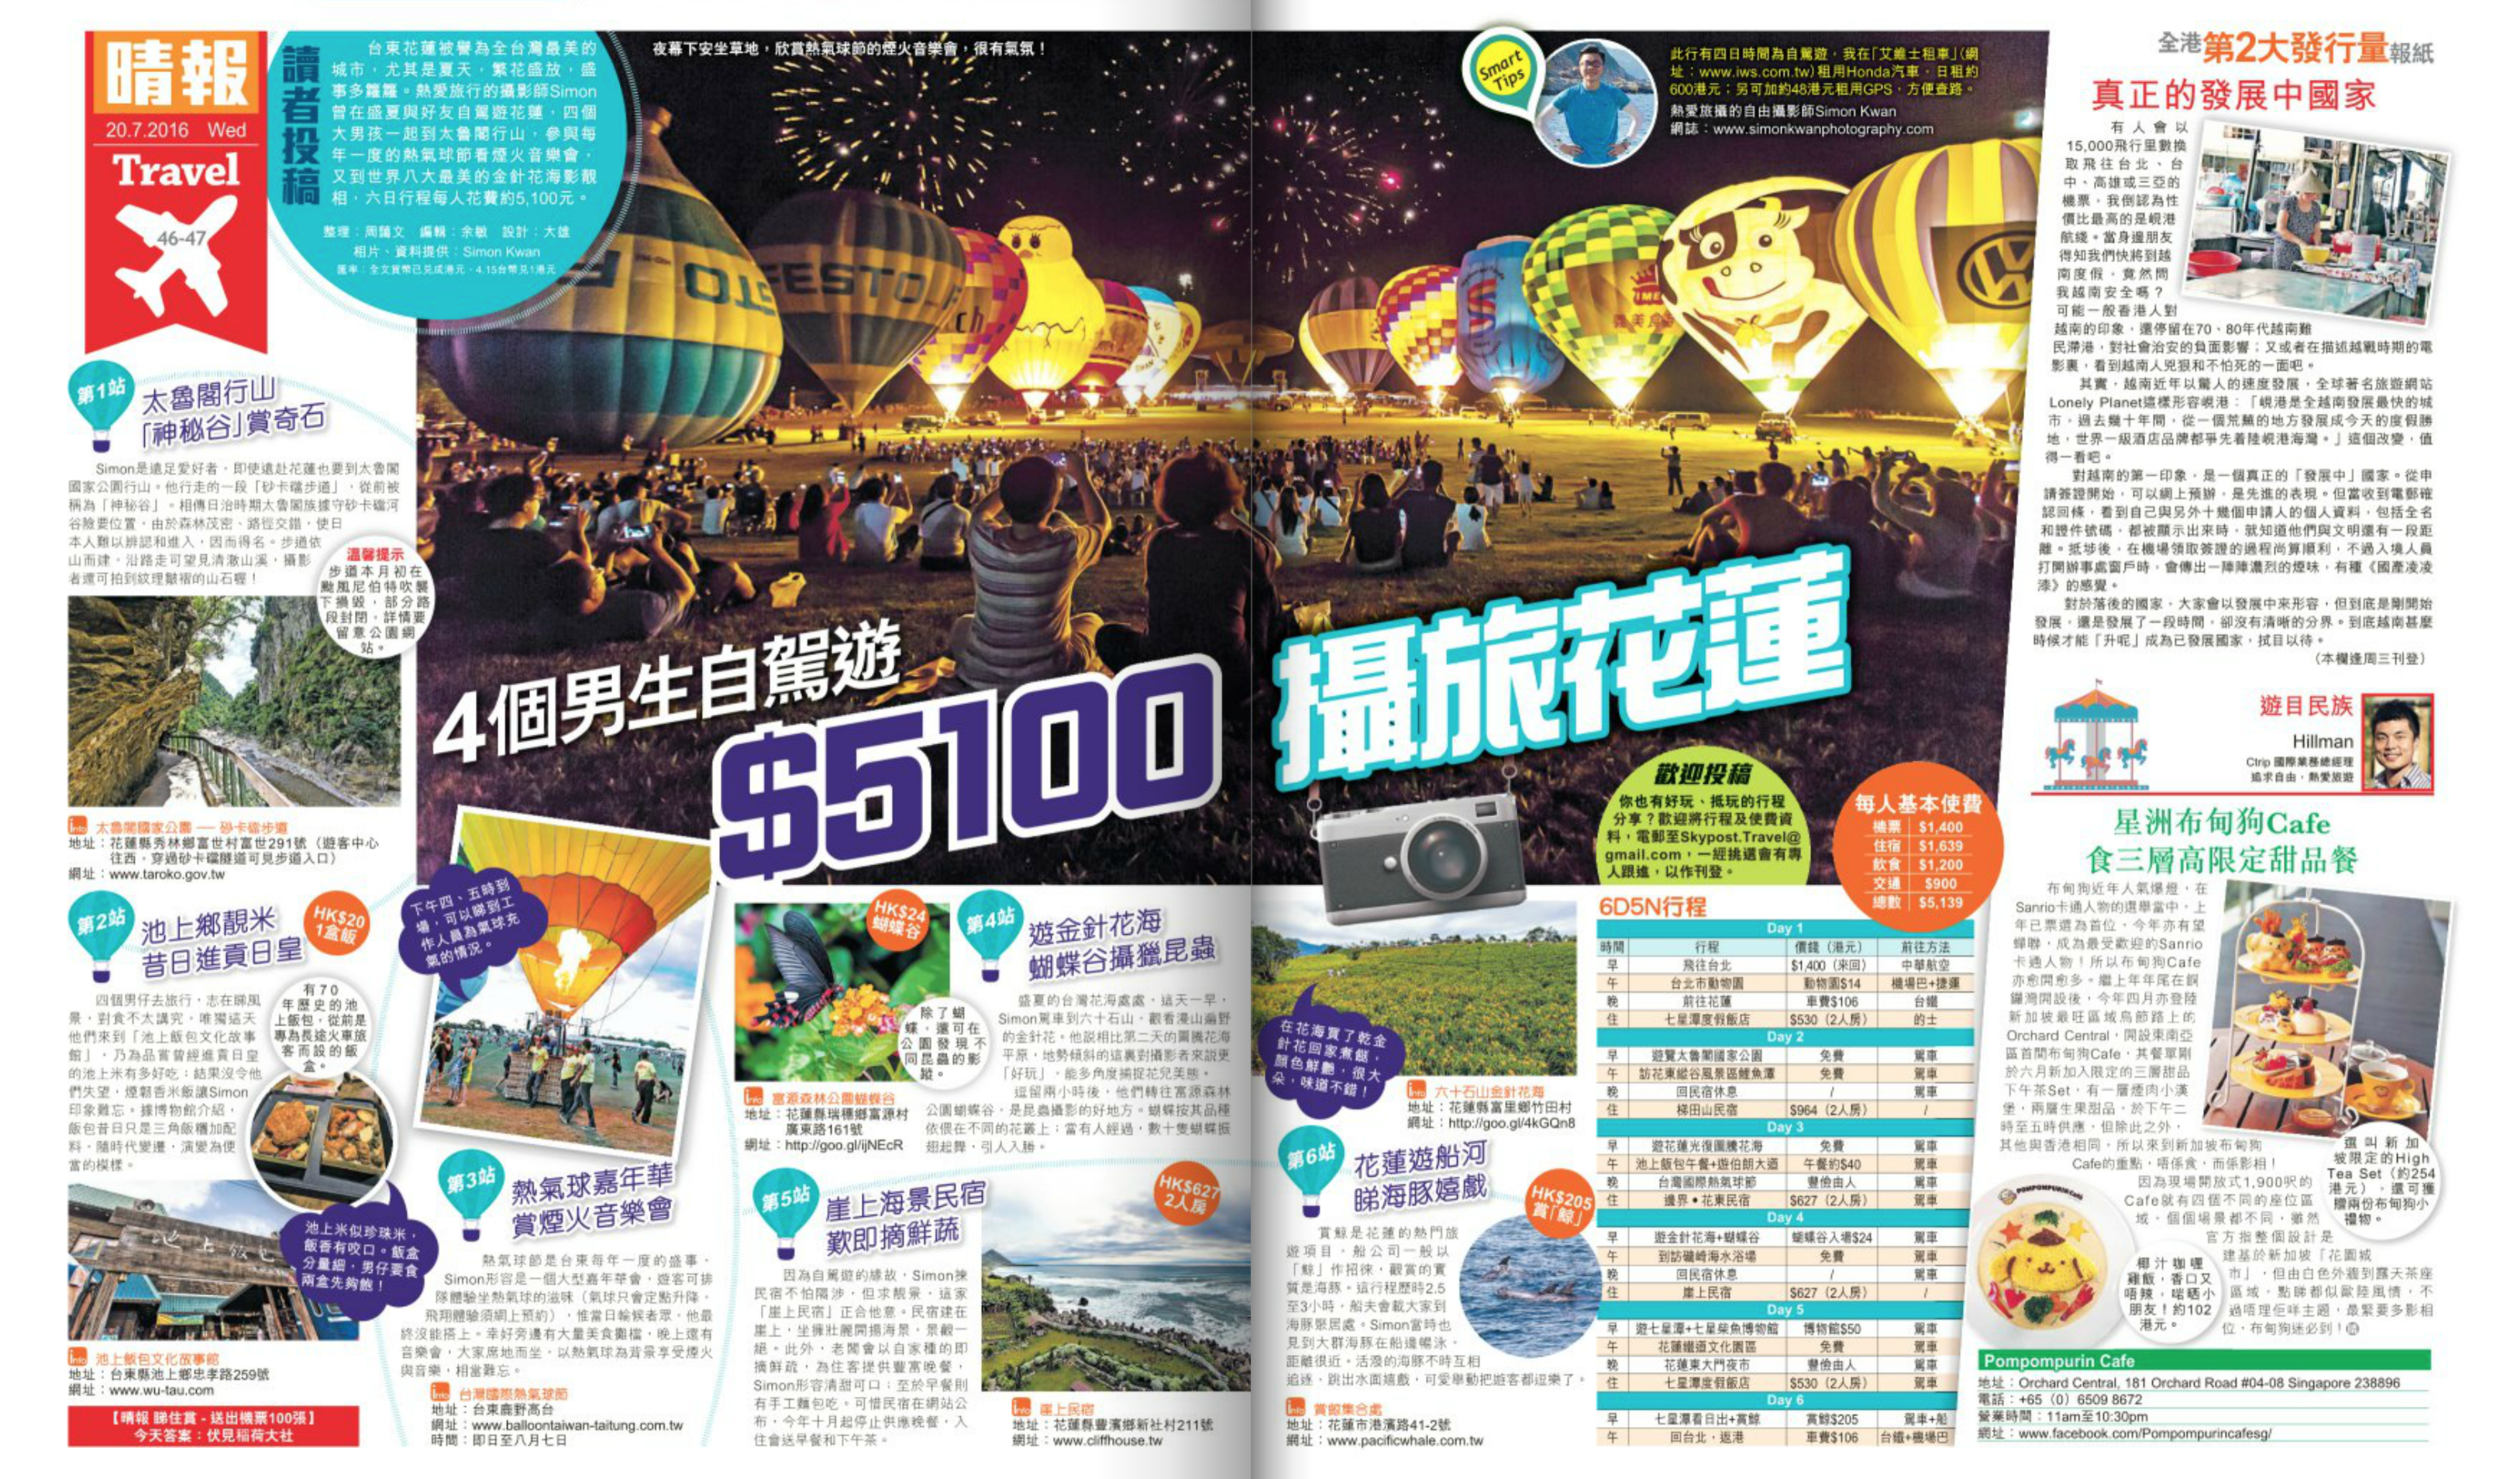 Sky Post 晴報 - Travel Guide of Hong Kong local newspaper20th July, 2016